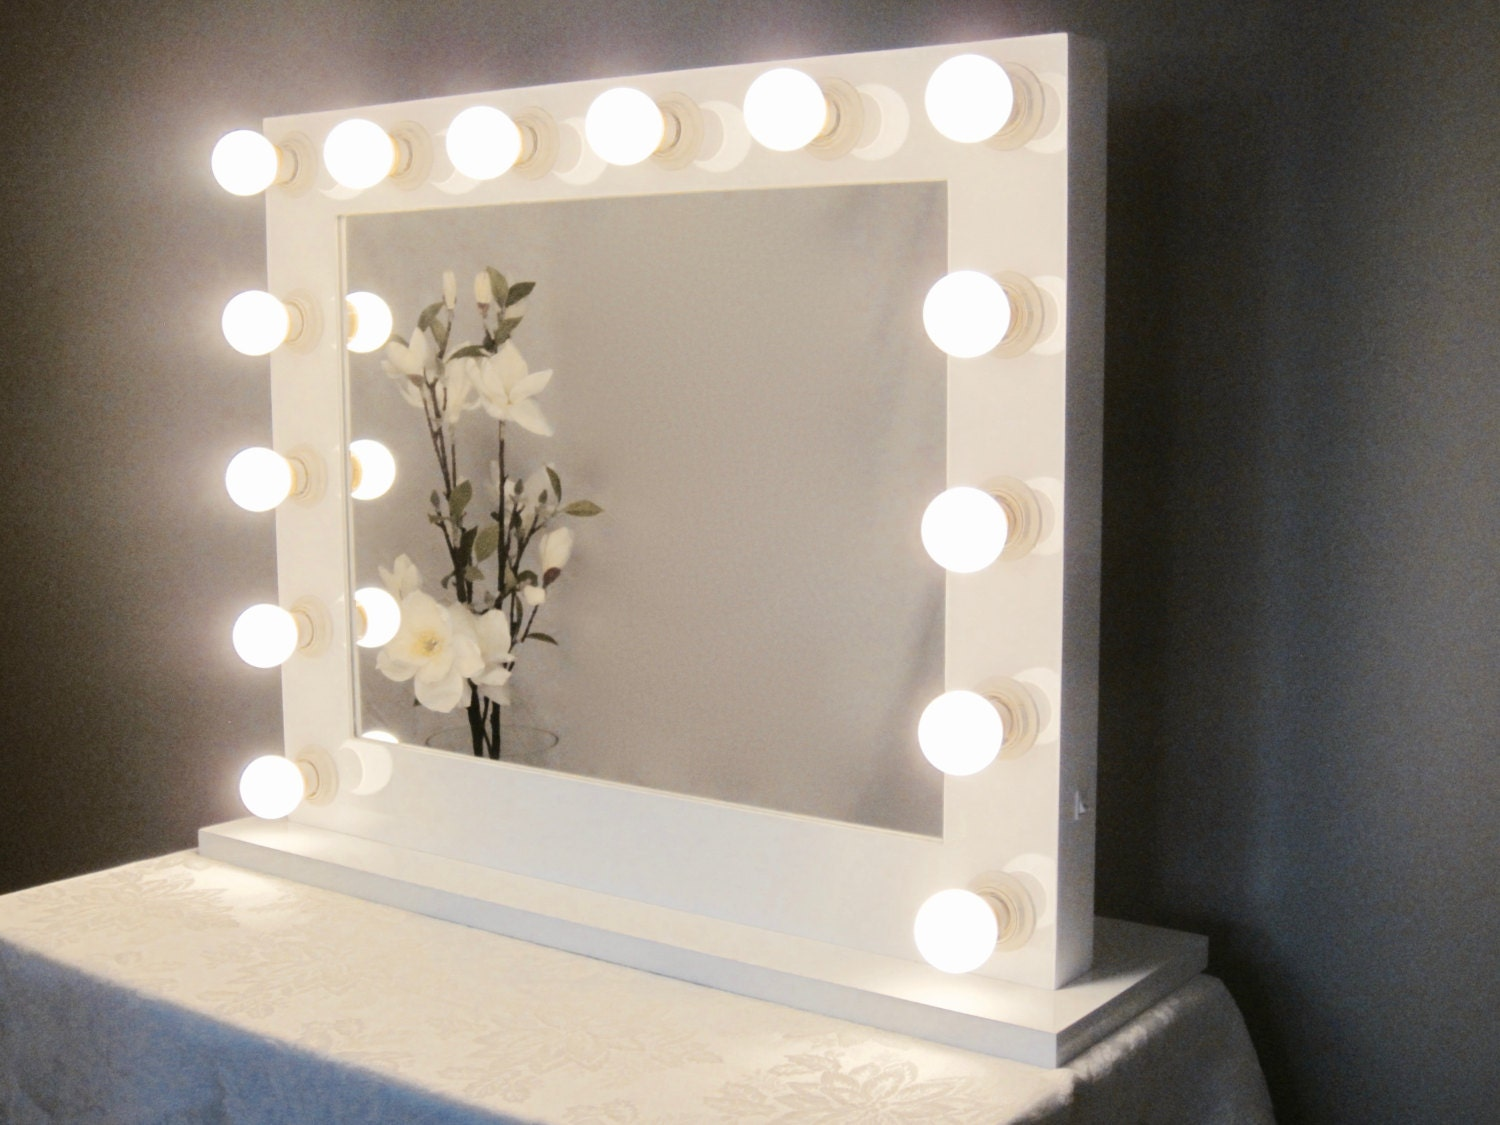 Grand hollywood lighted vanity mirror w led bulbs by - Bedroom vanity mirror with lights ...